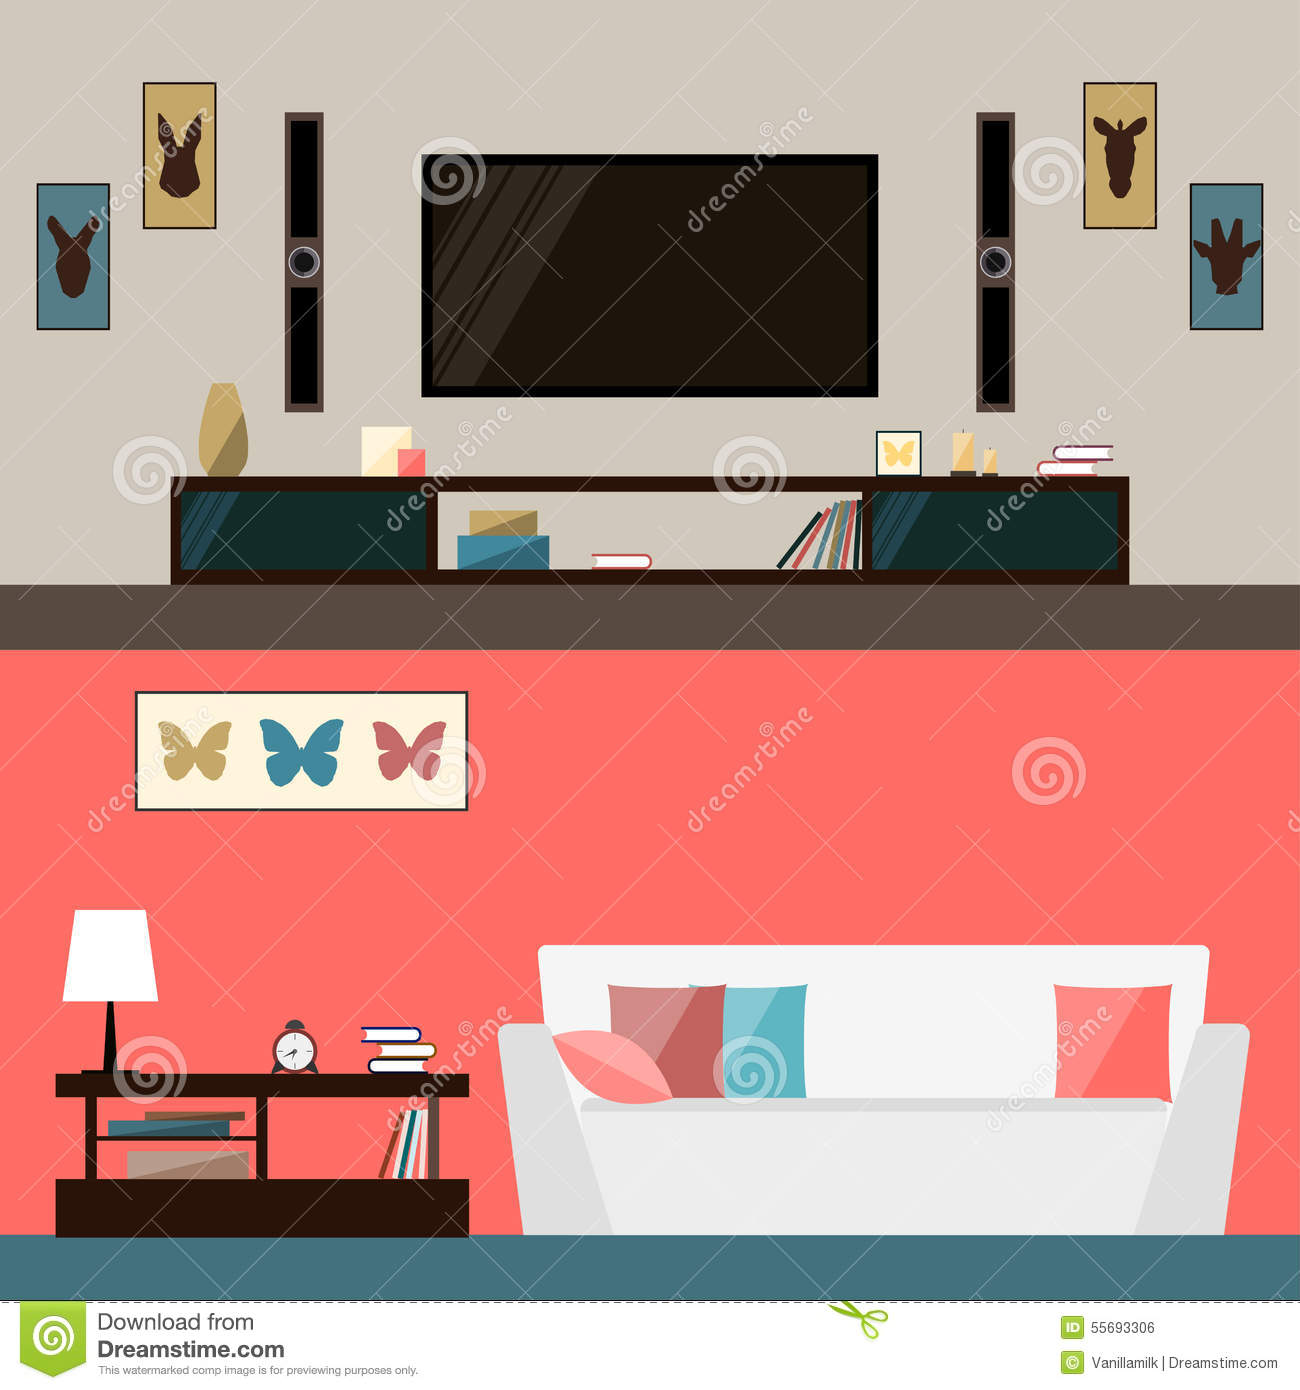 Illustration In Trendy Flat Style With Room Interior For